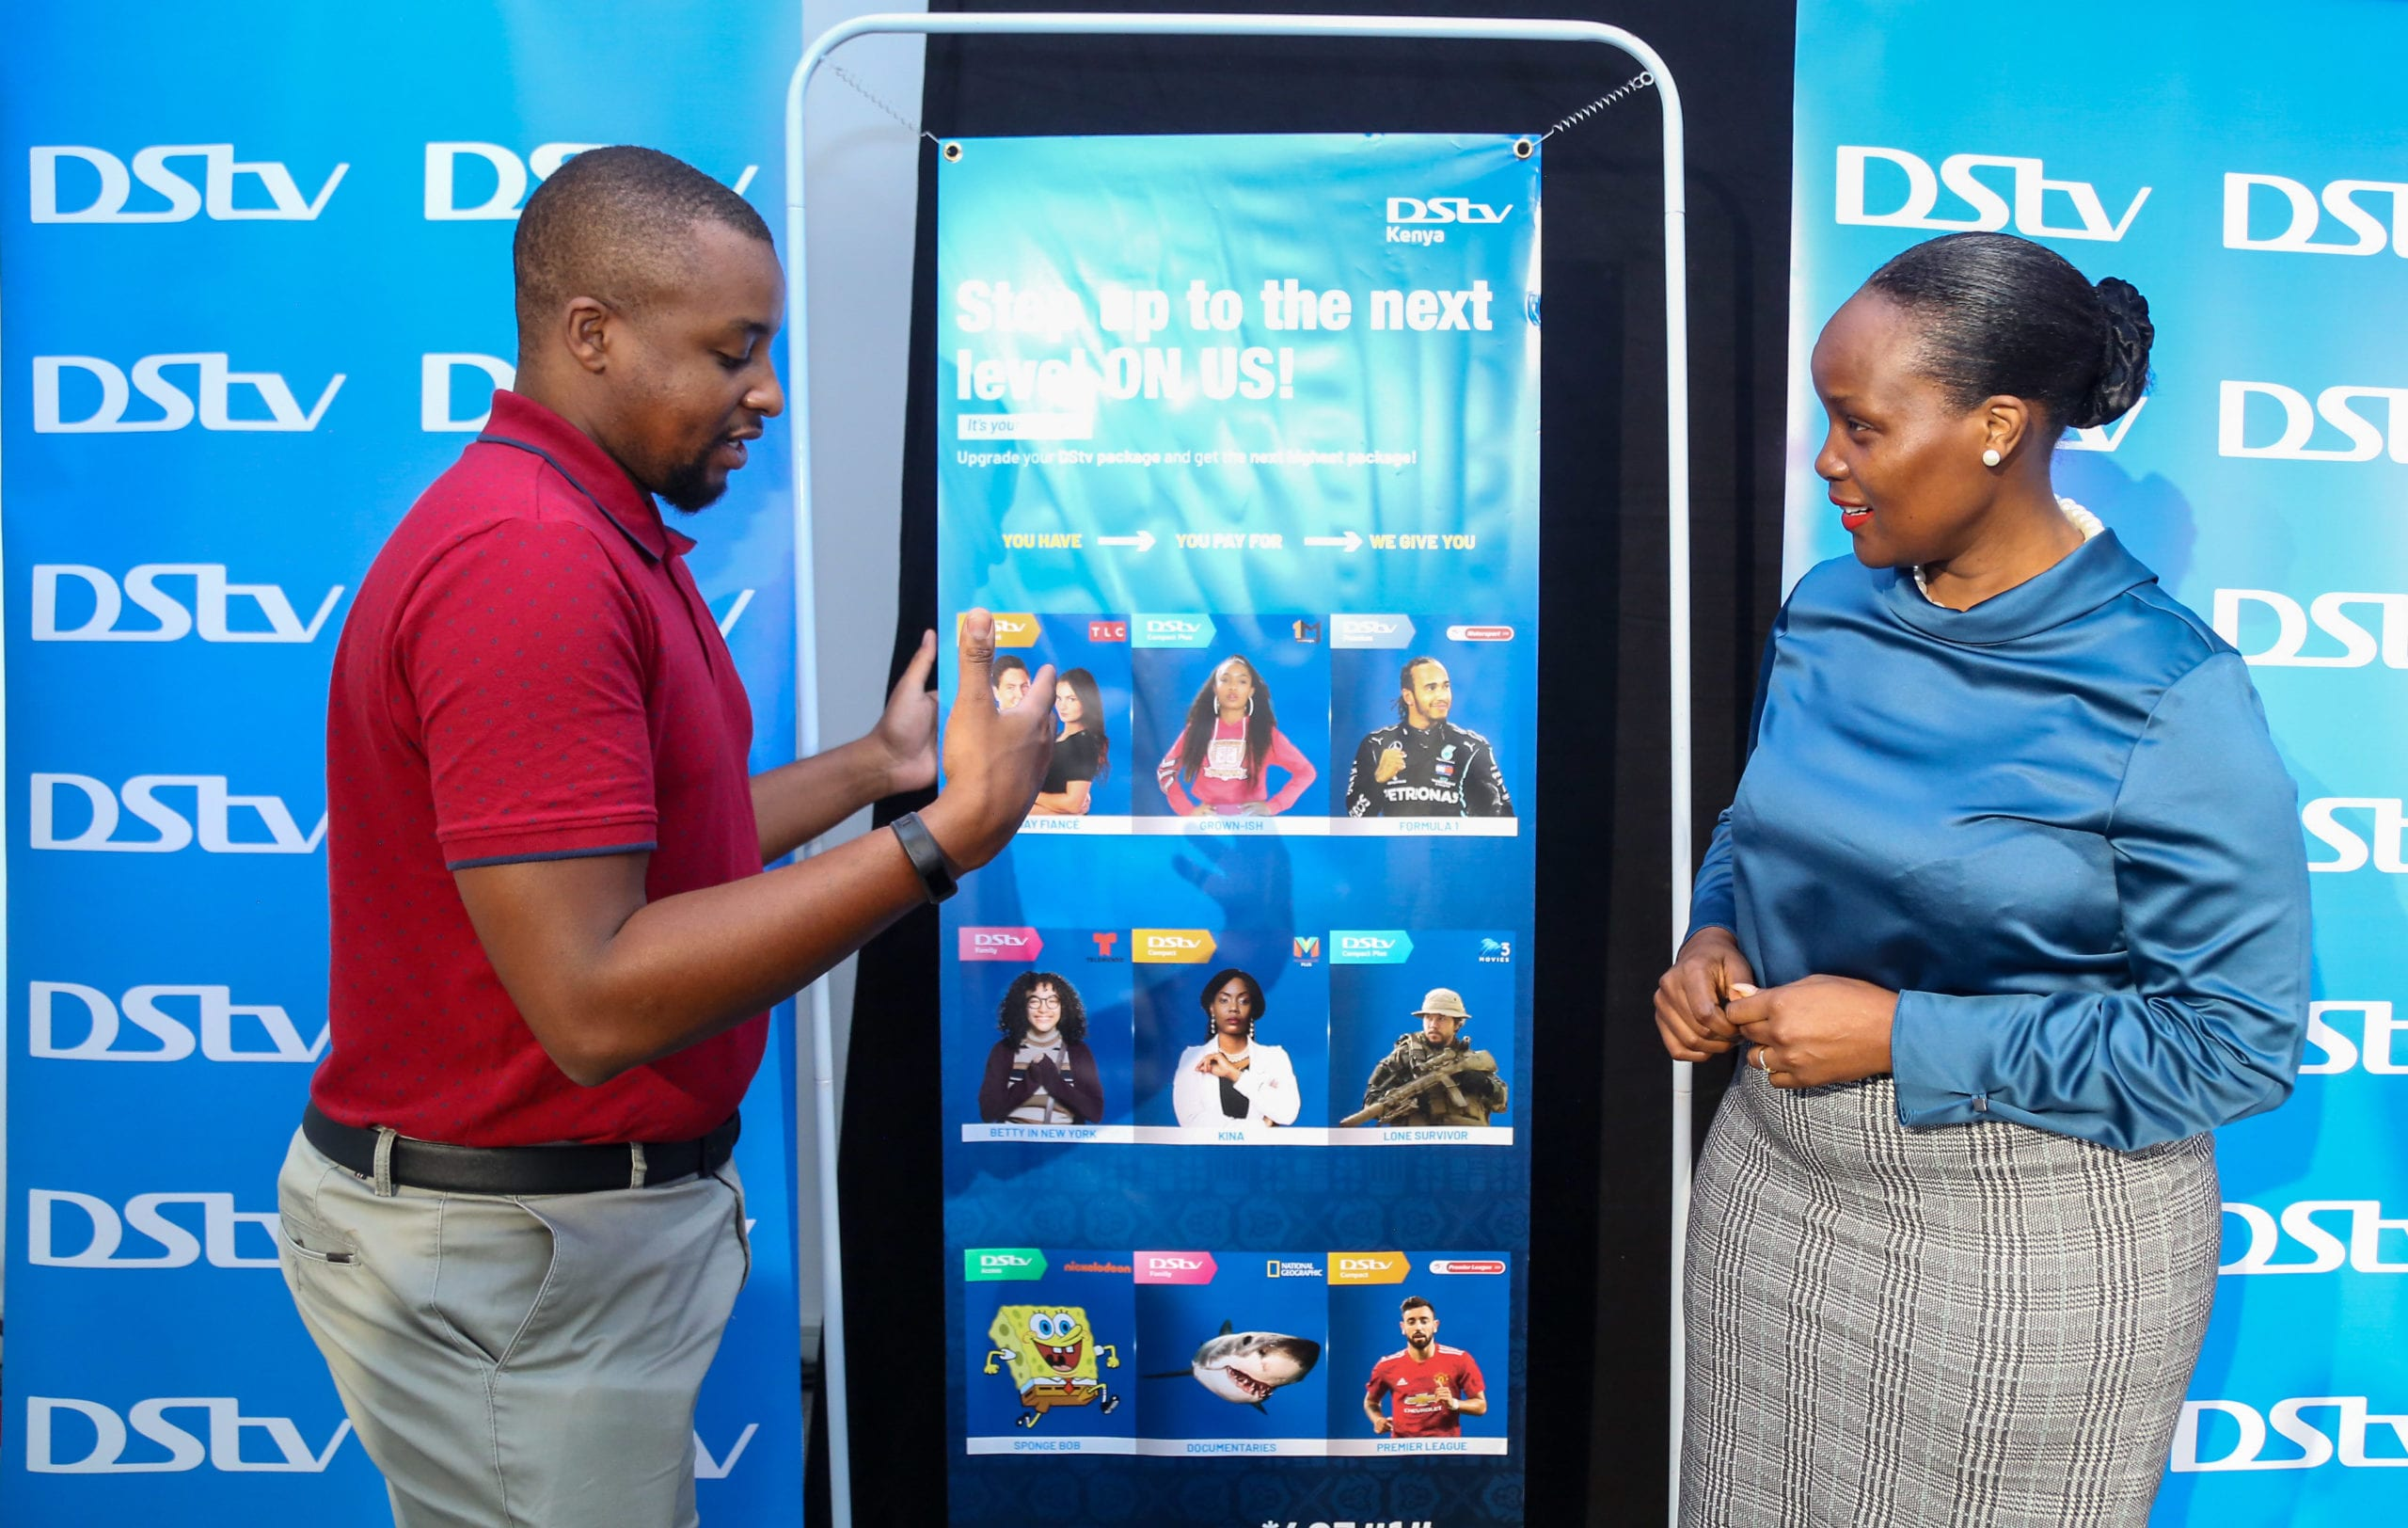 Multichoice offers free upgrades to customers